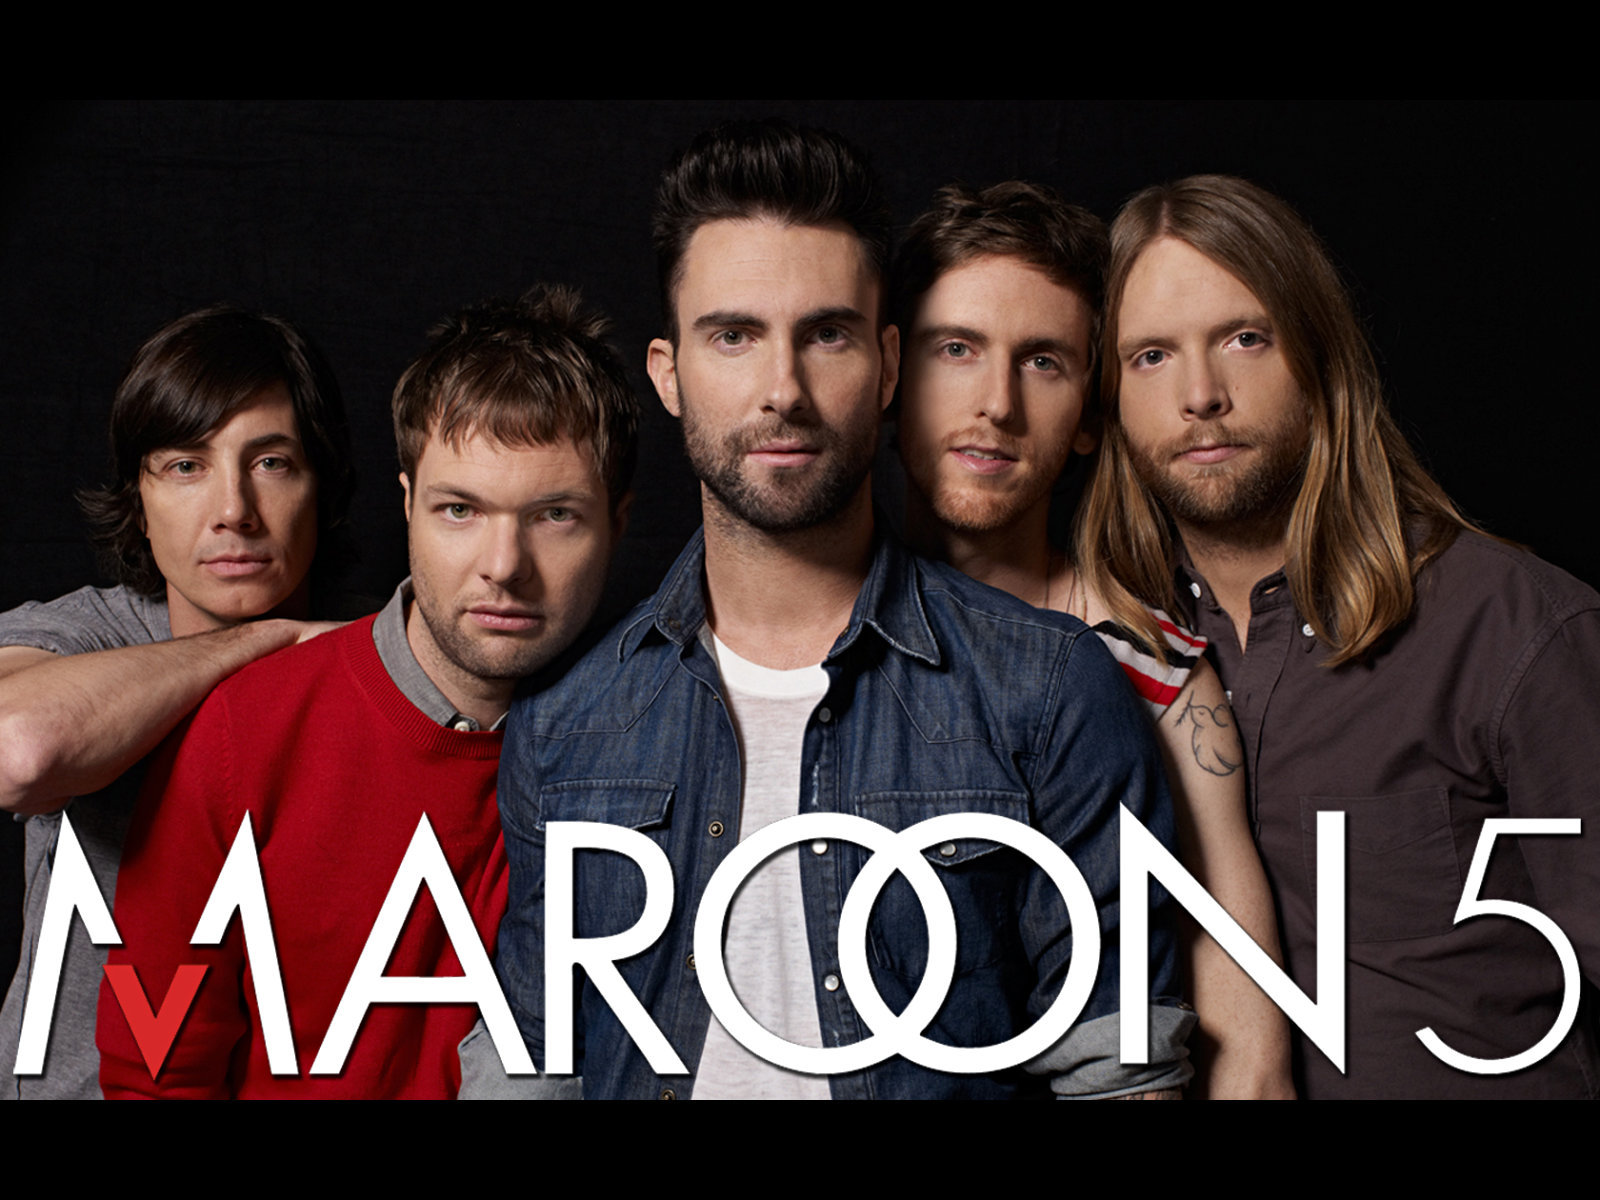 http://ezhpe.files.wordpress.com/2012/07/maroon_5_06.jpg